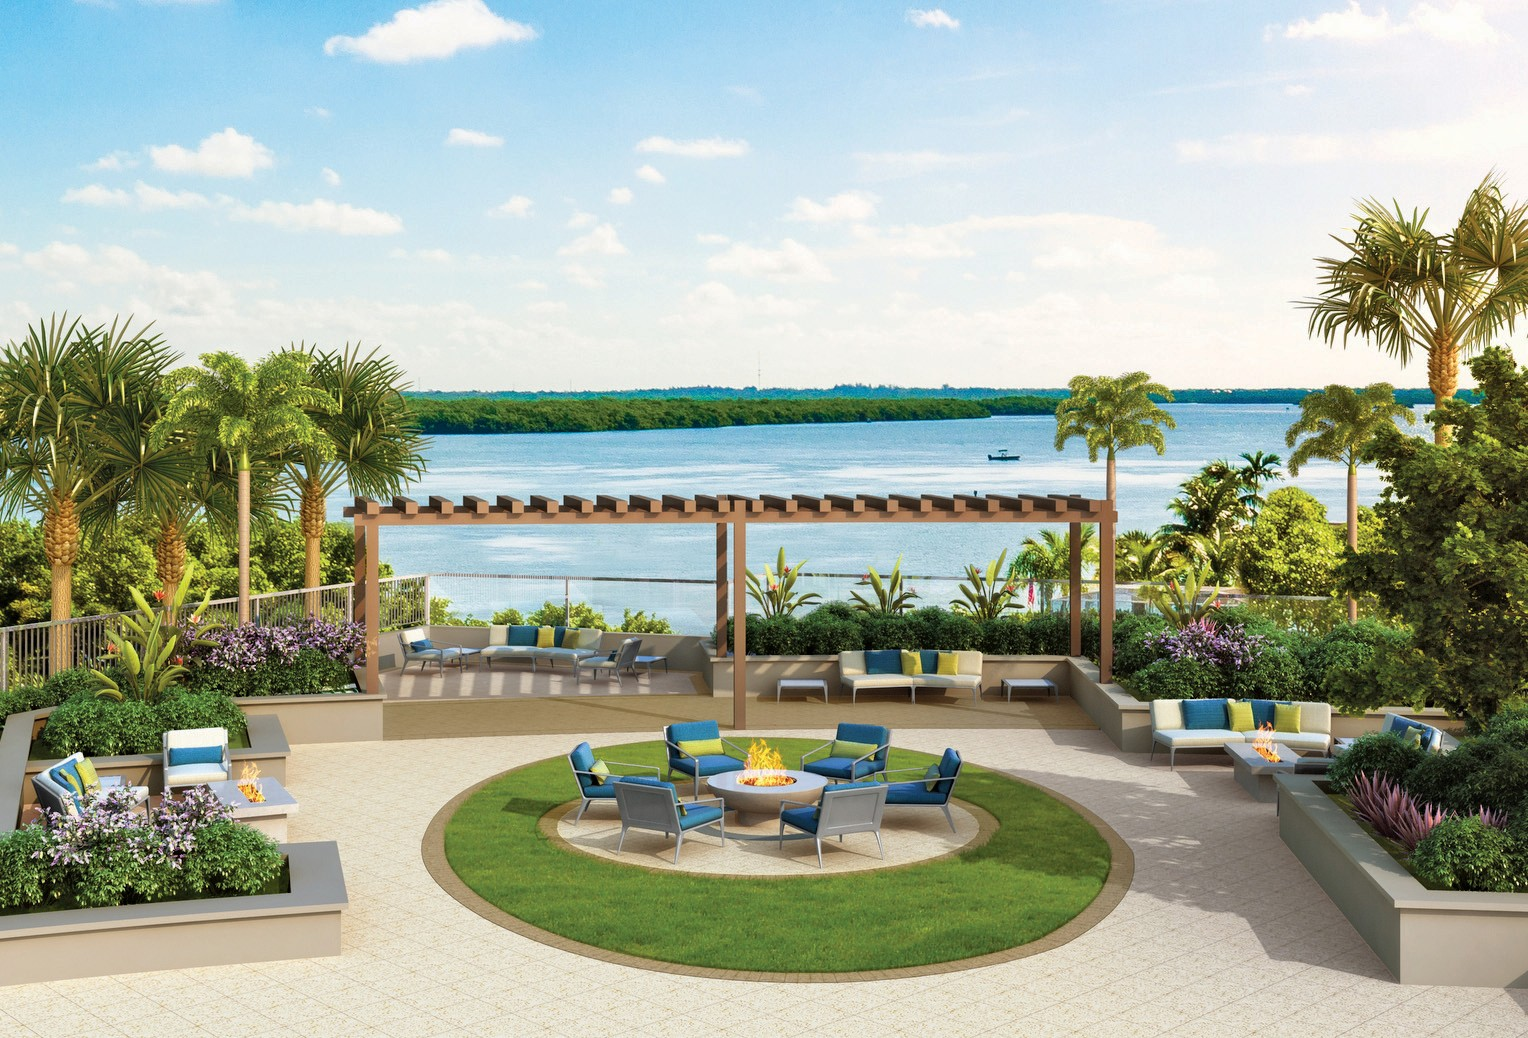 Its Been More Than 10 Years Since A New Building Has Built On Fort Myers Beach And Design Sensibilities Have Changed Said Mark Wilson